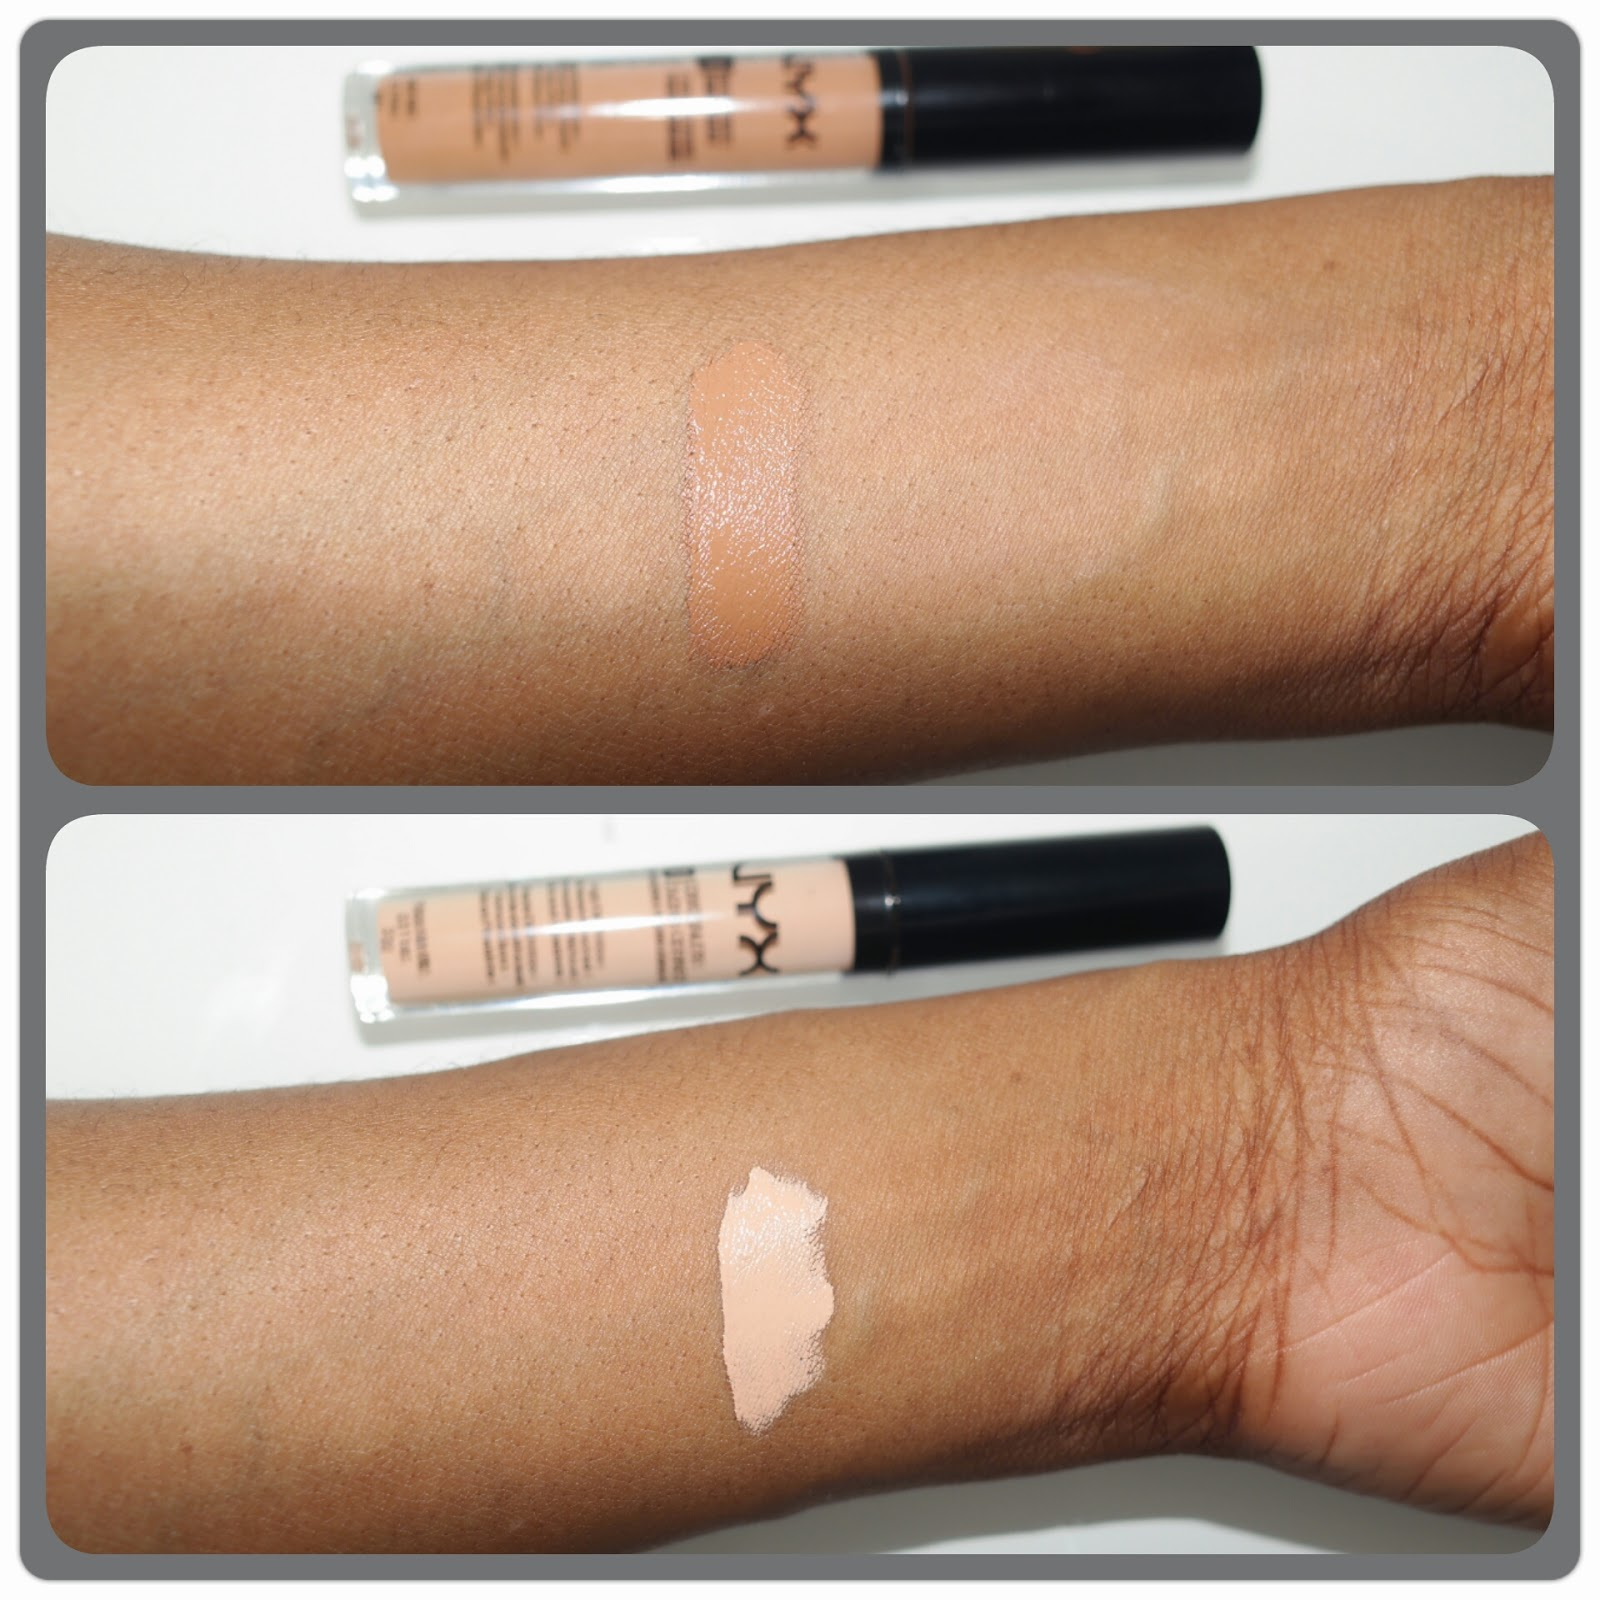 Thefoundationdirectory aallexxy 39 s foundation files nyx hd concealer - Nyx concealer wand medium ...